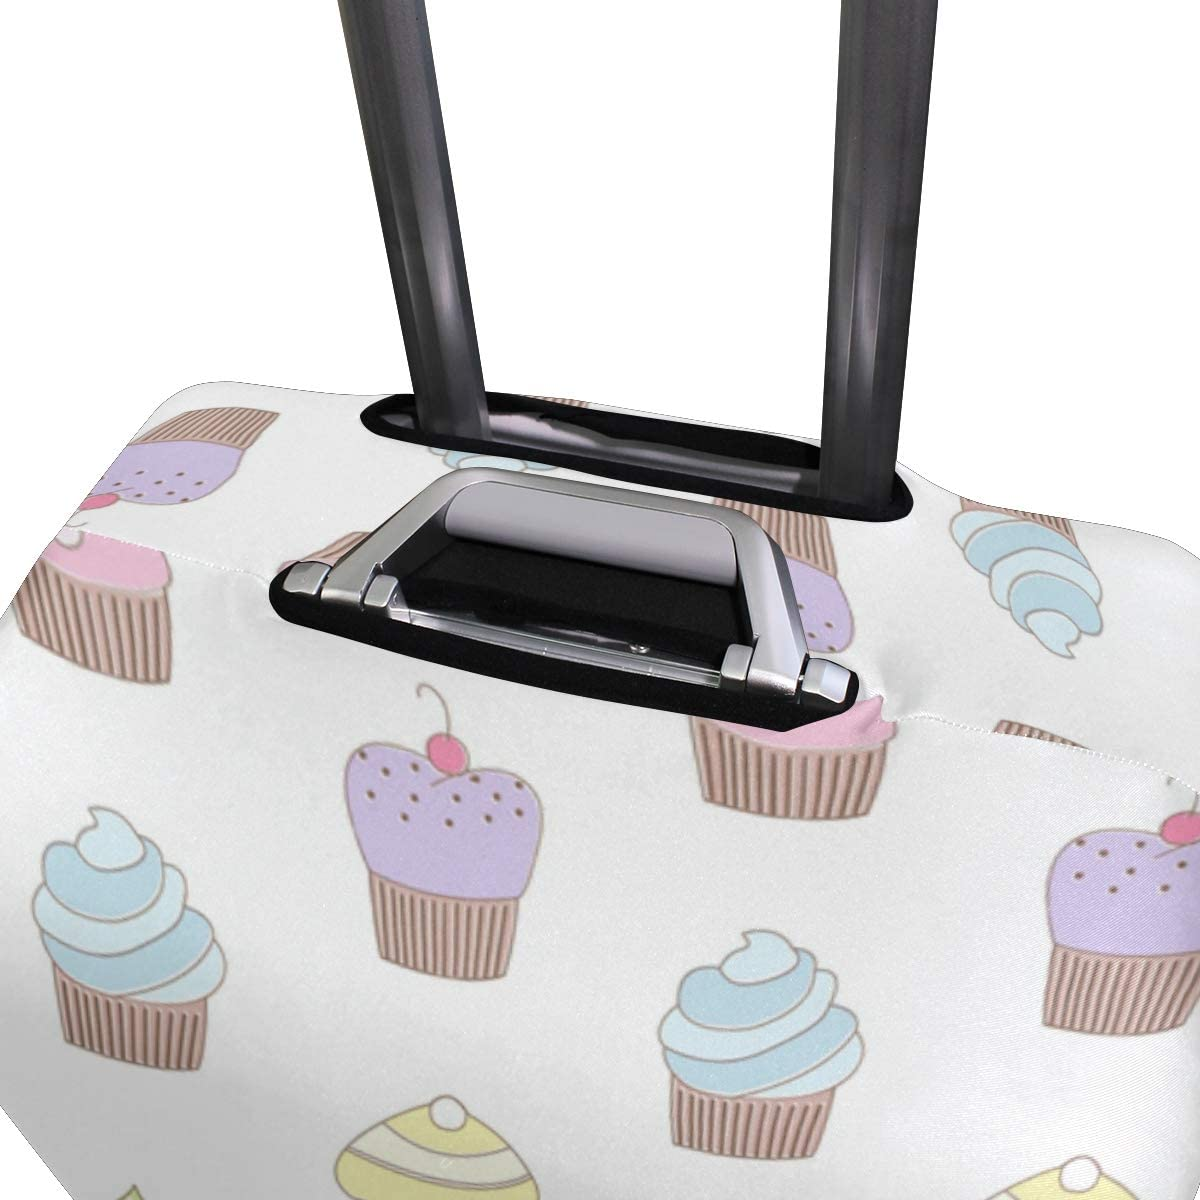 Nanmma Cute 3D Ice Cream Pattern Luggage Protector Travel Luggage Cover Trolley Case Protective Cover Fits 18-32 Inch